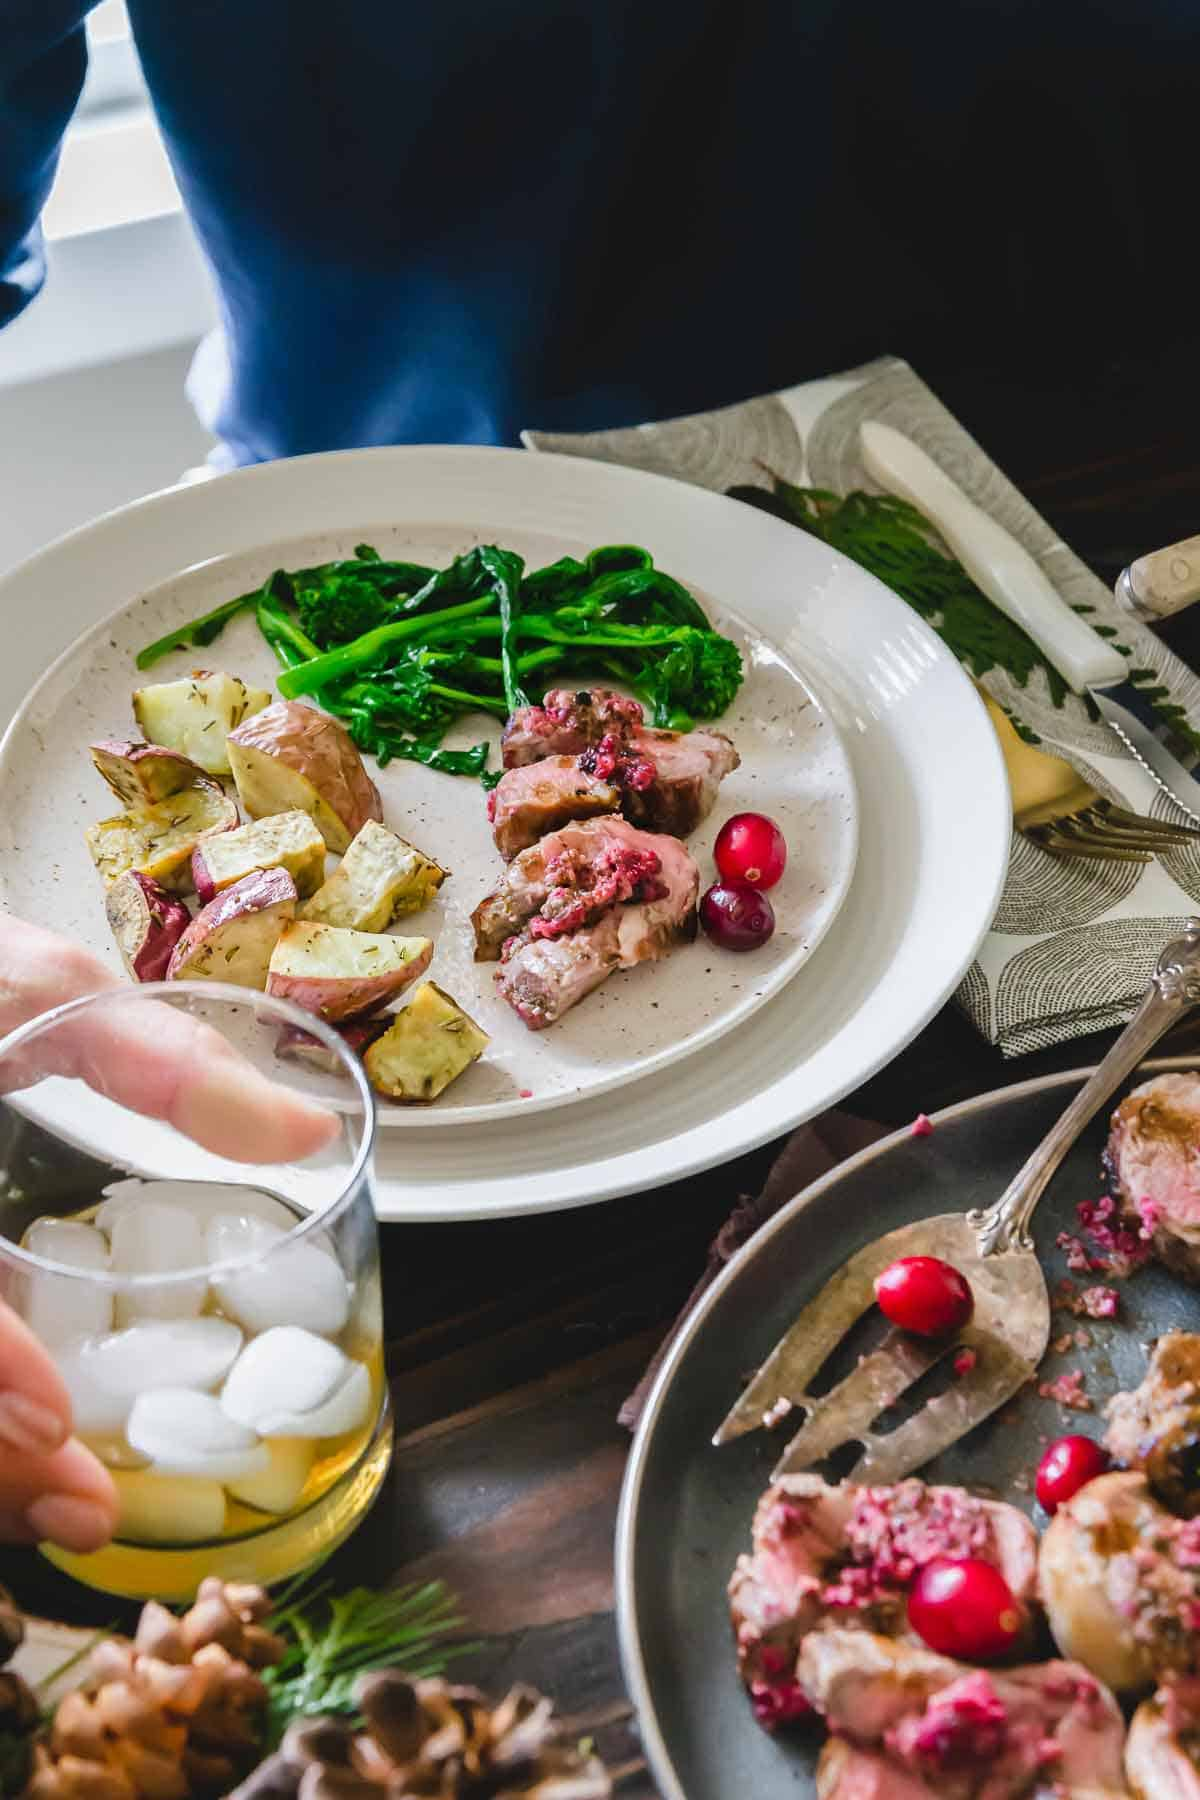 Ditch the beef and try this easy to make stuffed lamb rolled with cranberry pesto for a stunning dinner party main dish.